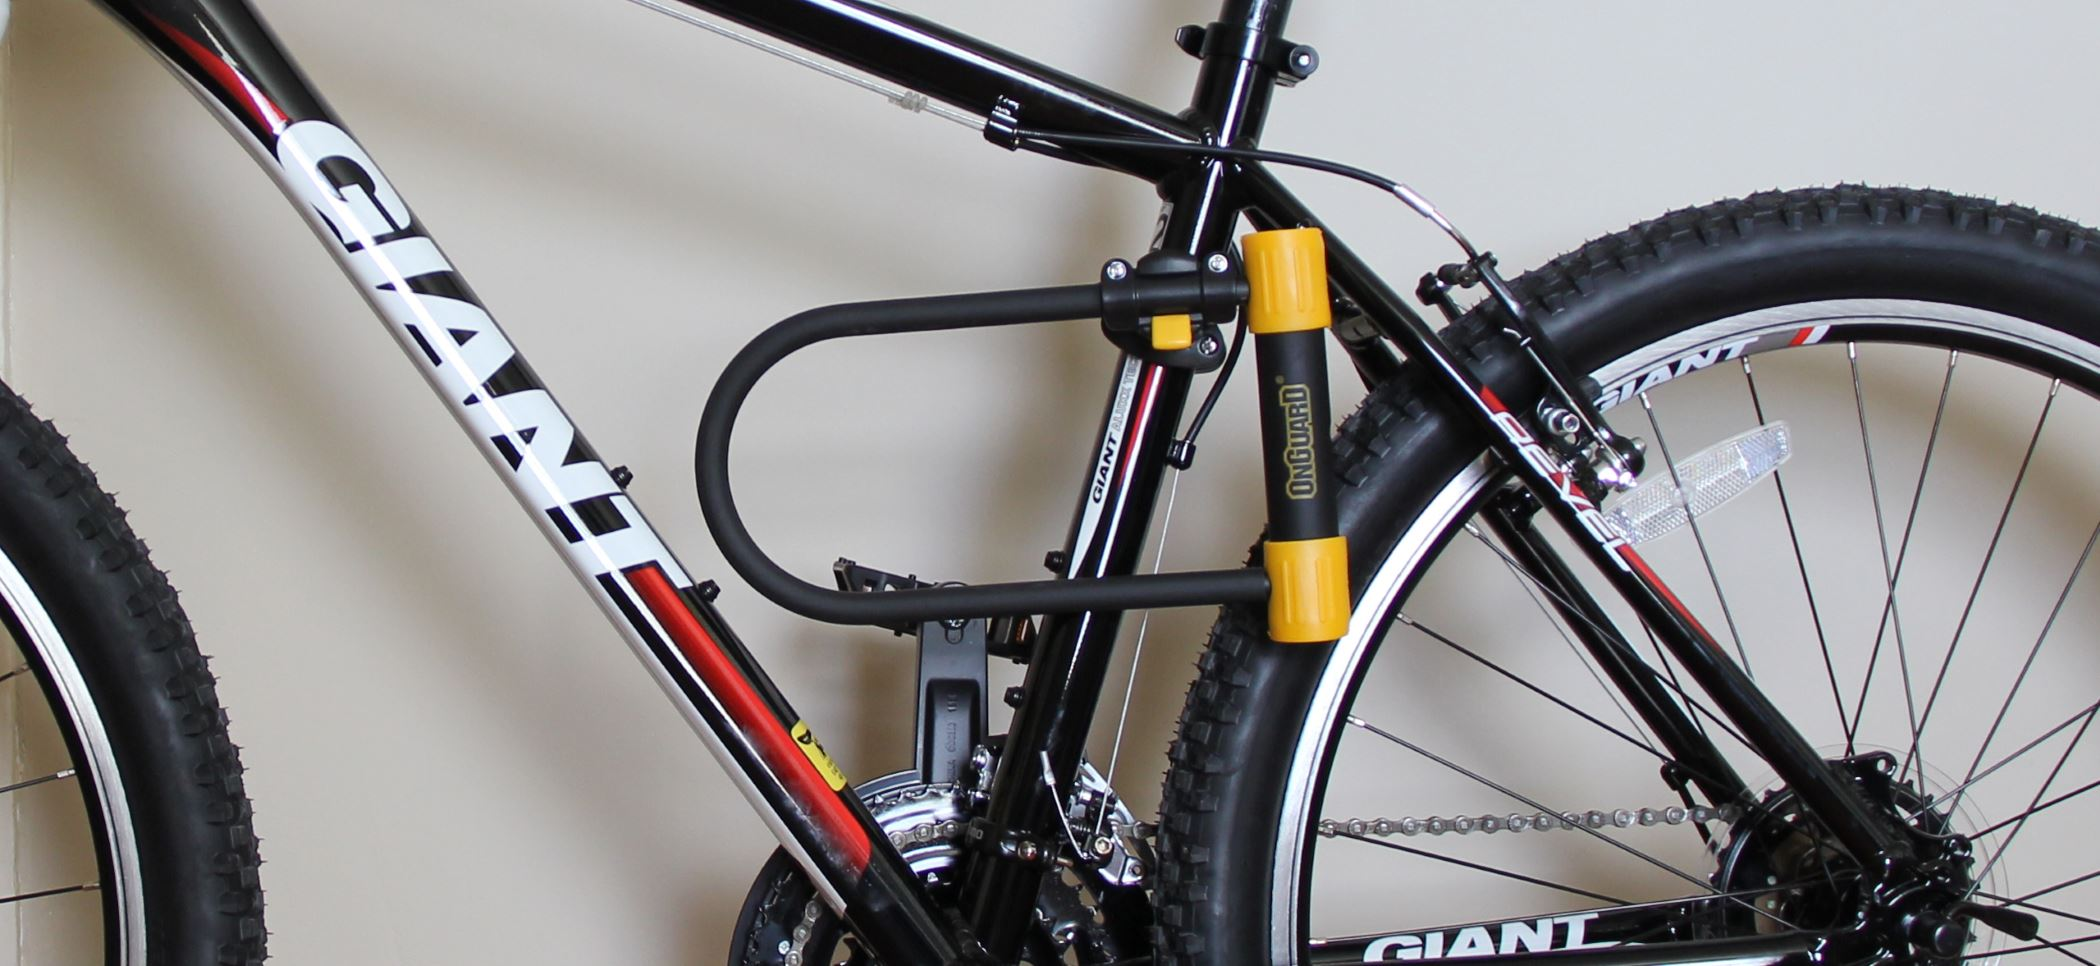 OnGuard Clamp Bracket Mount for Bicycle Lock